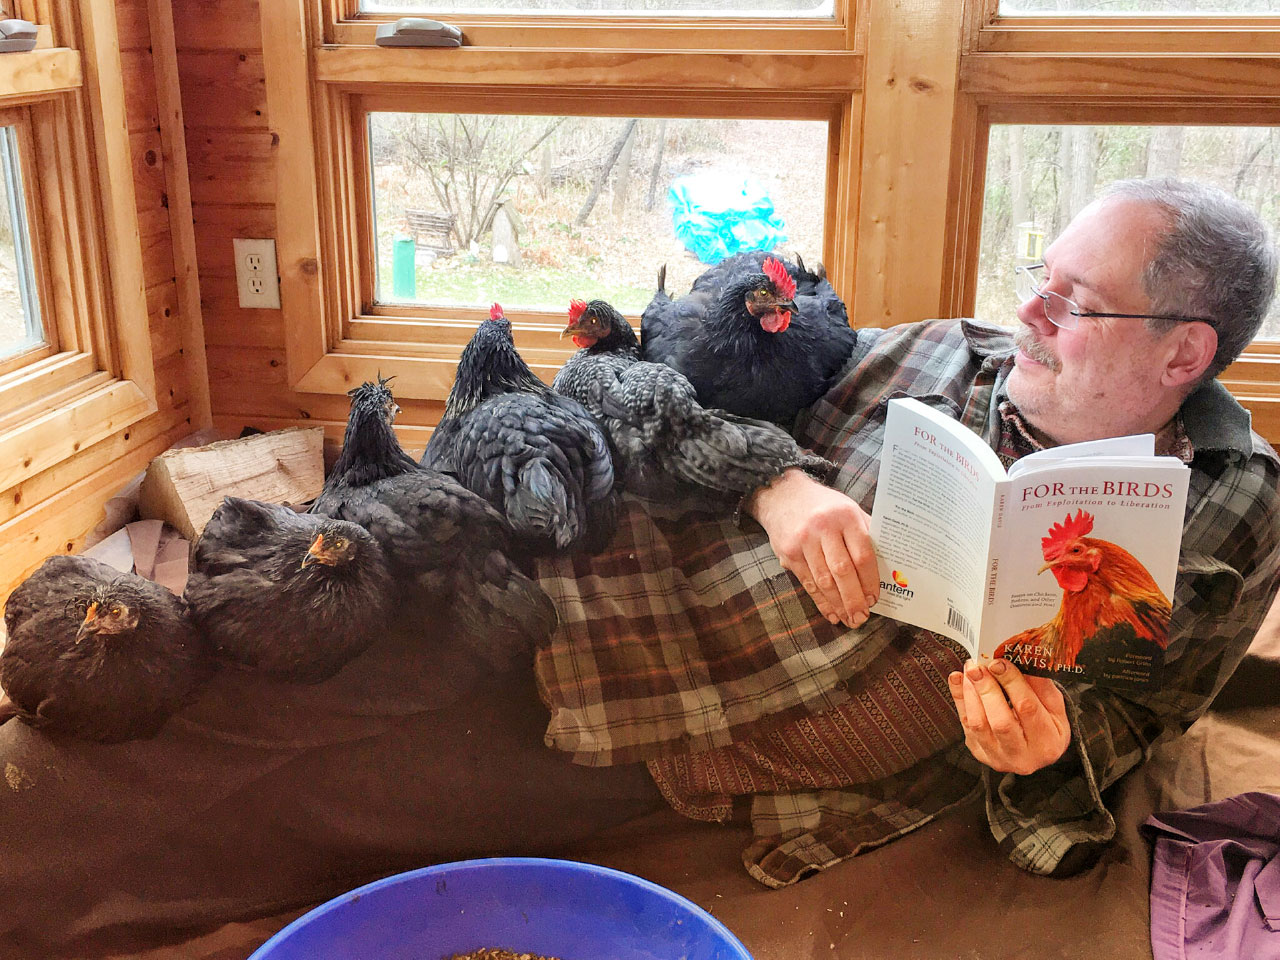 Bob McGrath laying on the floor with six hens perched on him